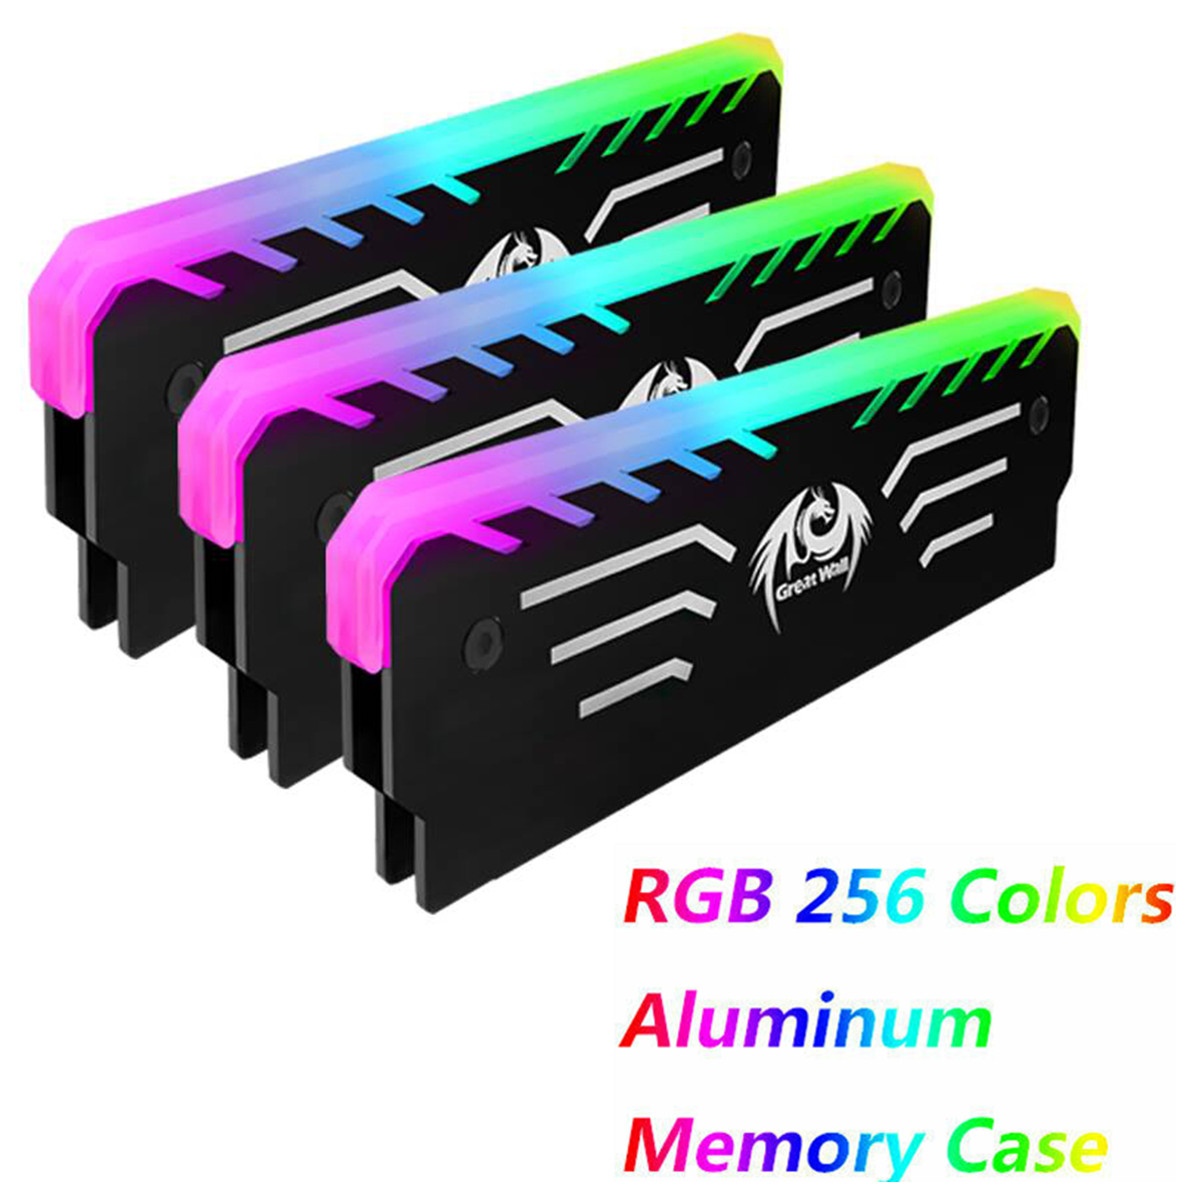 Memory Cooling Heatsink 4pcs ARGB LED RAM Heat Sink RGB Addressable 5V 3Pin Cooler for DIY PC Game MOD DDR DDR3 DDR4 Cover Kit with Controller